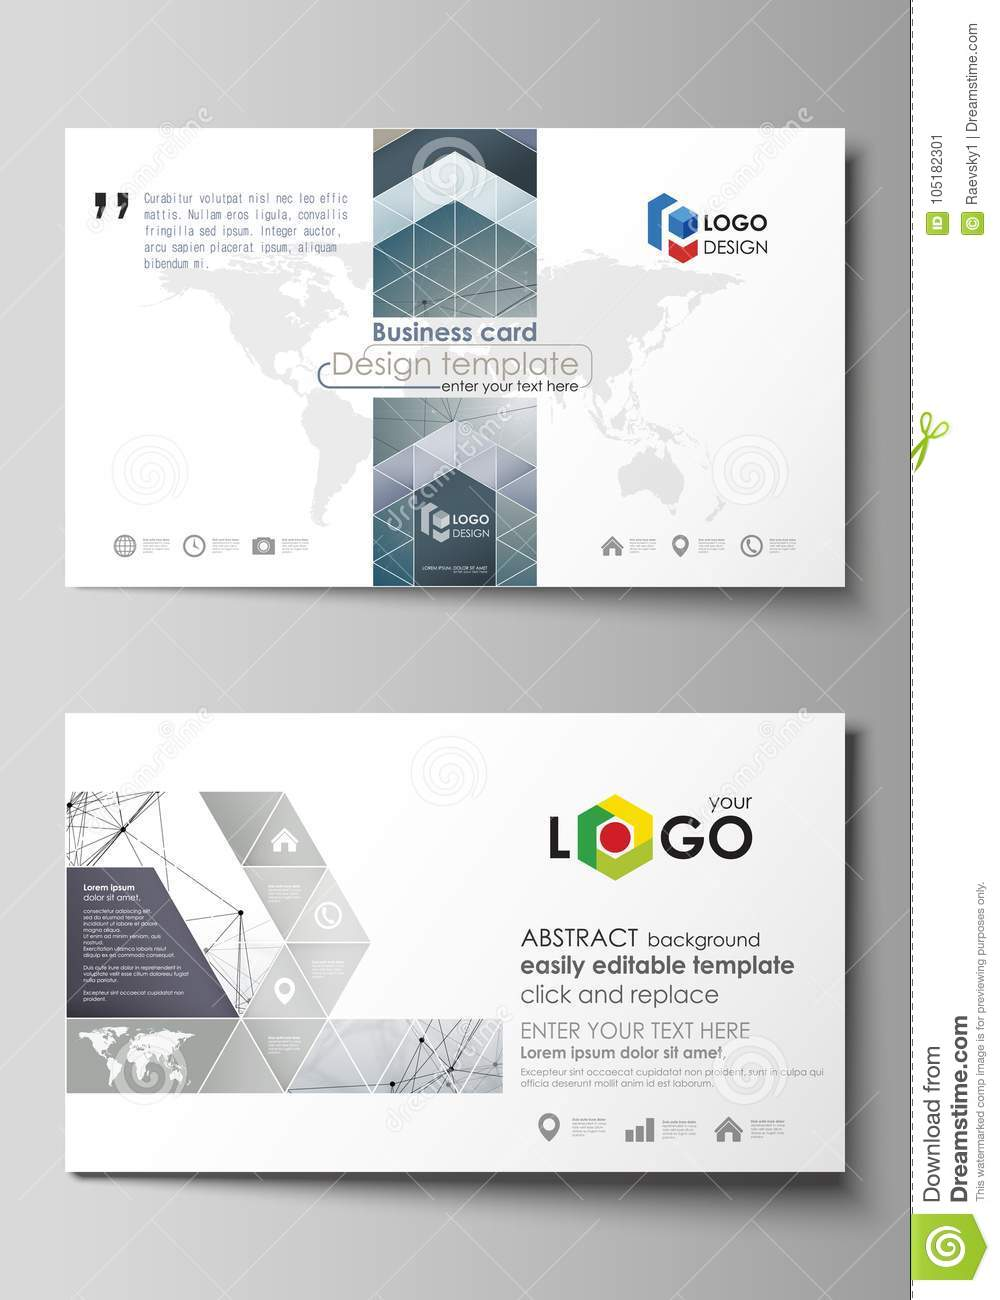 Business card templates easy editable layout abstract vector business card templates easy editable layout abstract vector design template dna and neurons fbccfo Choice Image